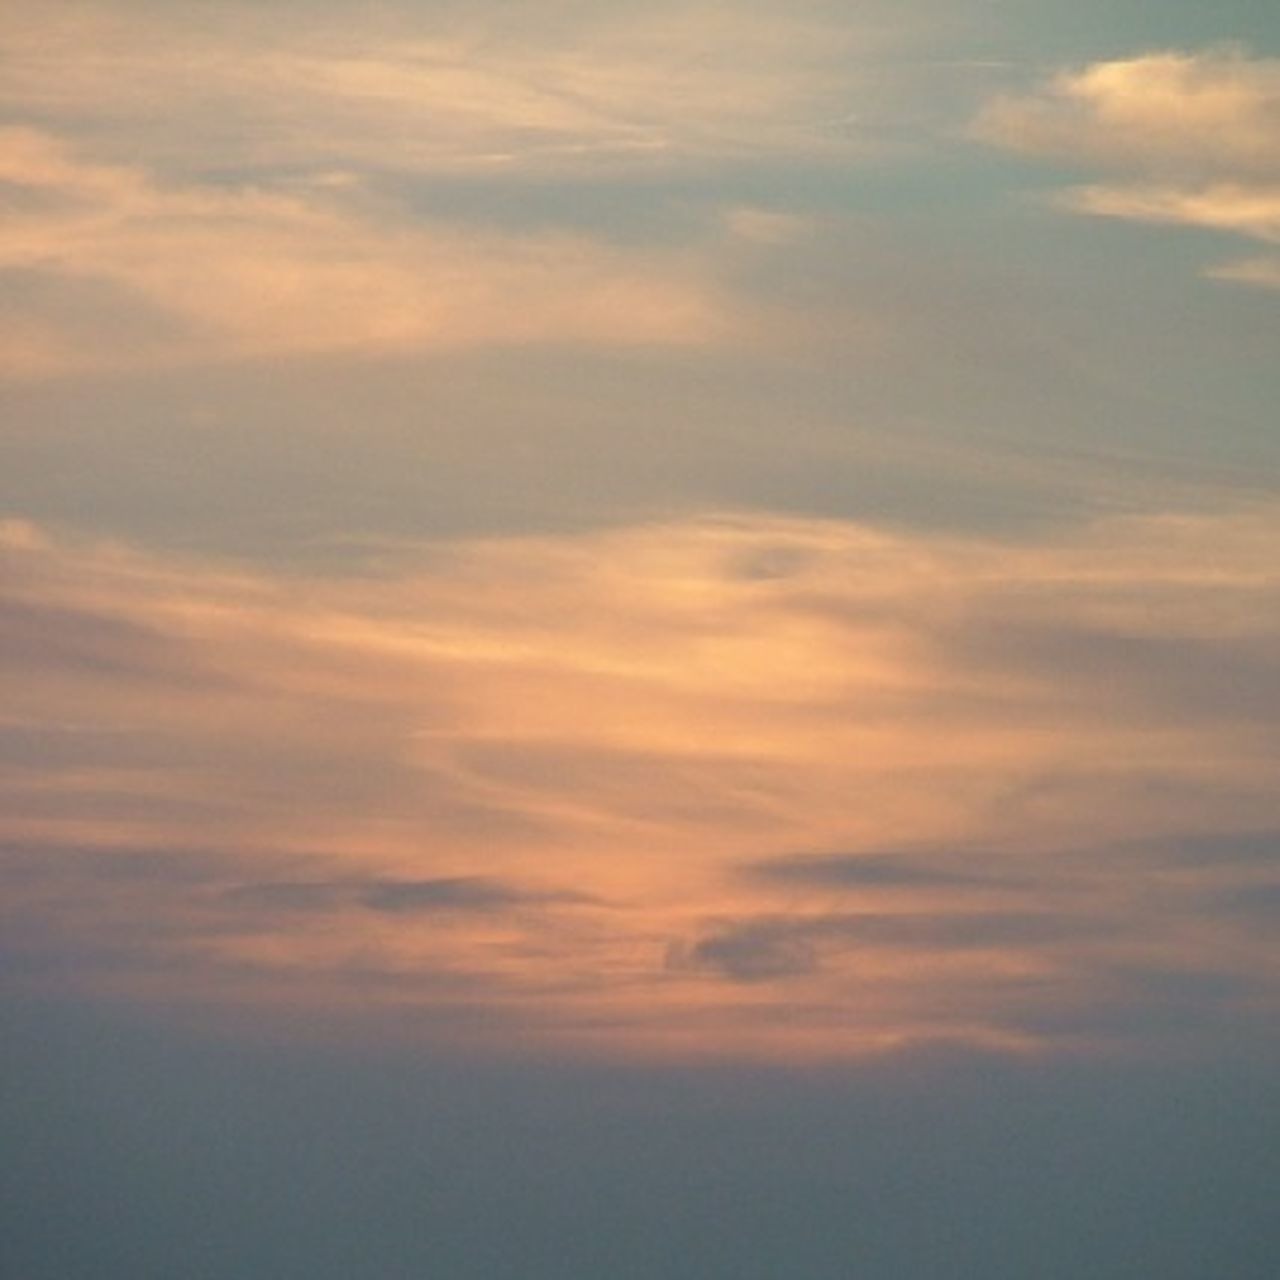 cloud - sky, sky, sunset, cloudscape, dramatic sky, nature, scenics, sky only, tranquility, tranquil scene, beauty in nature, vibrant color, heaven, outdoors, backgrounds, no people, blue, awe, low angle view, the natural world, day, multi colored, space